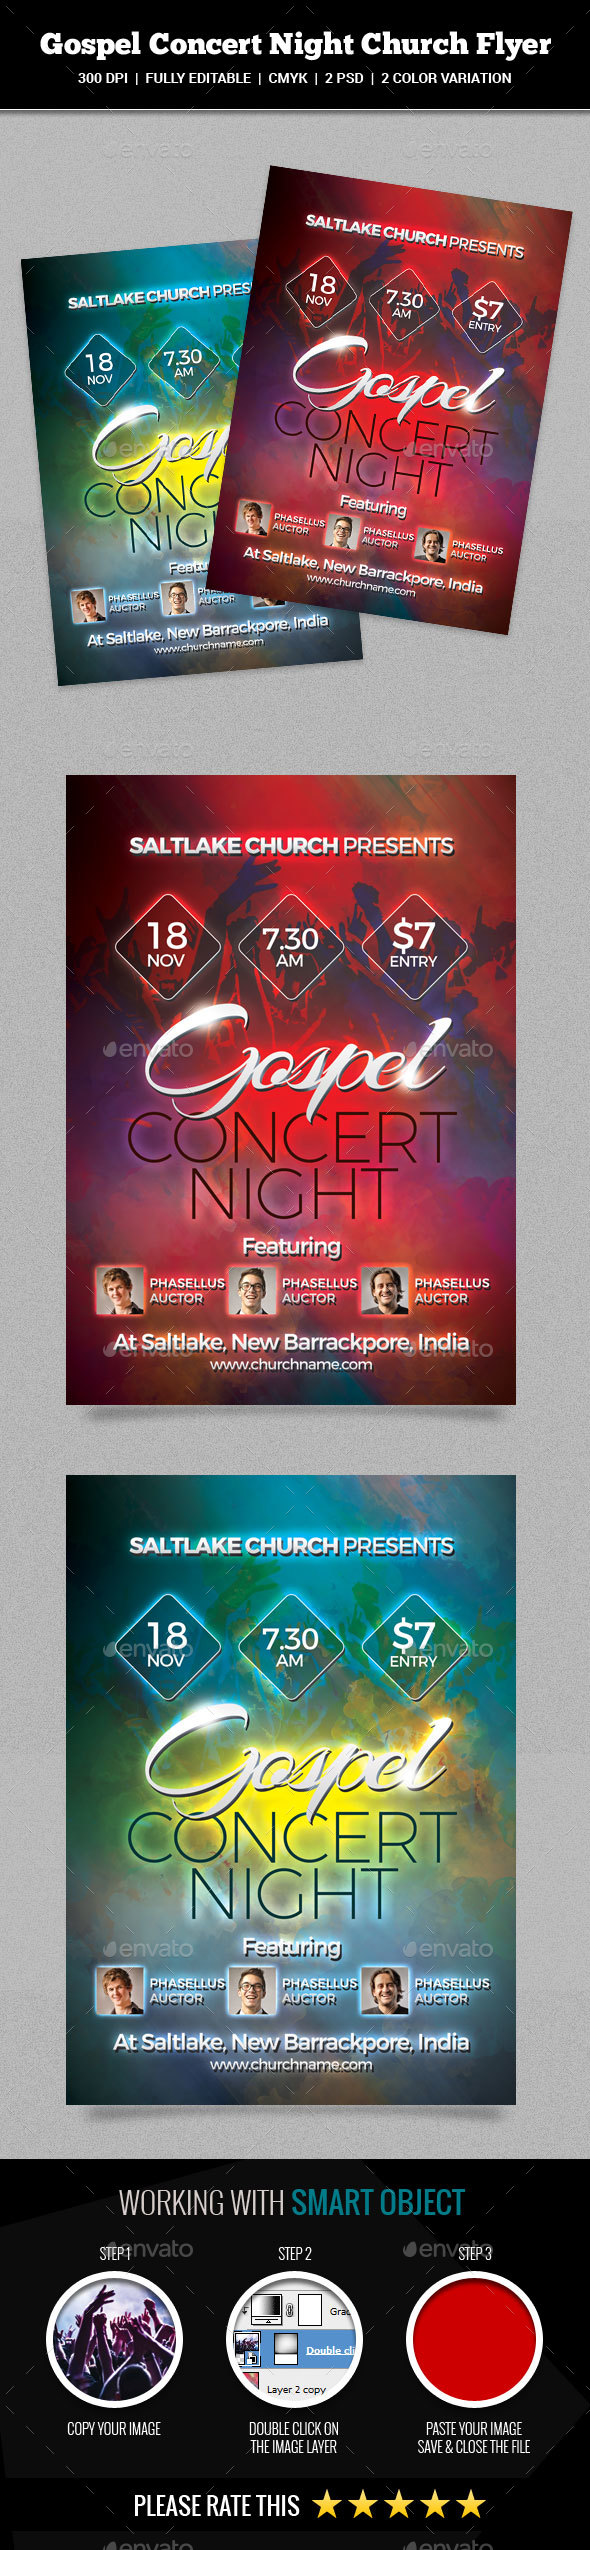 Gospel Concert Night Church Flyer - Church Flyers